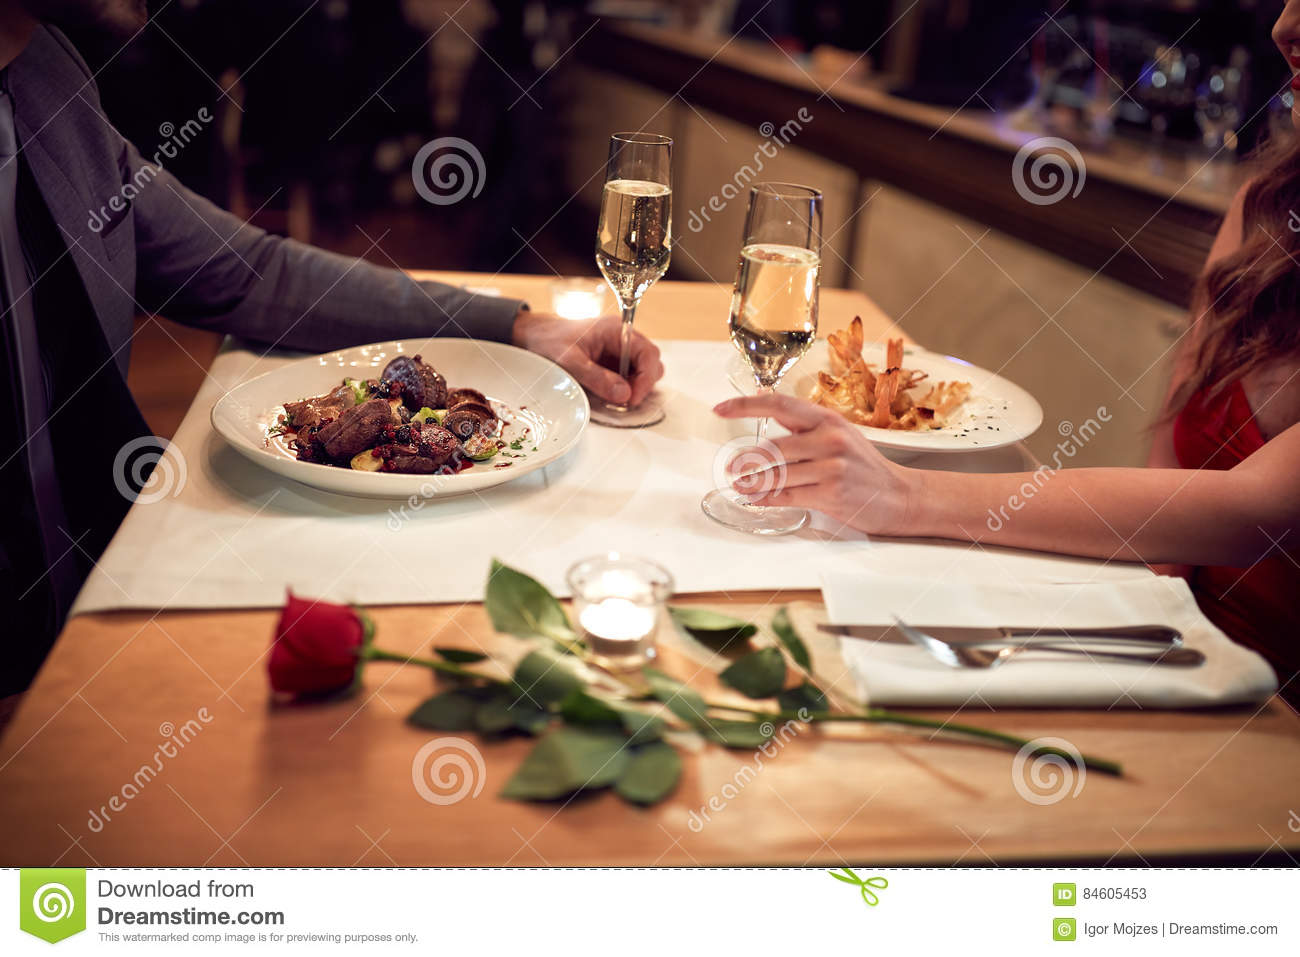 Romantic dinner for couple-concept